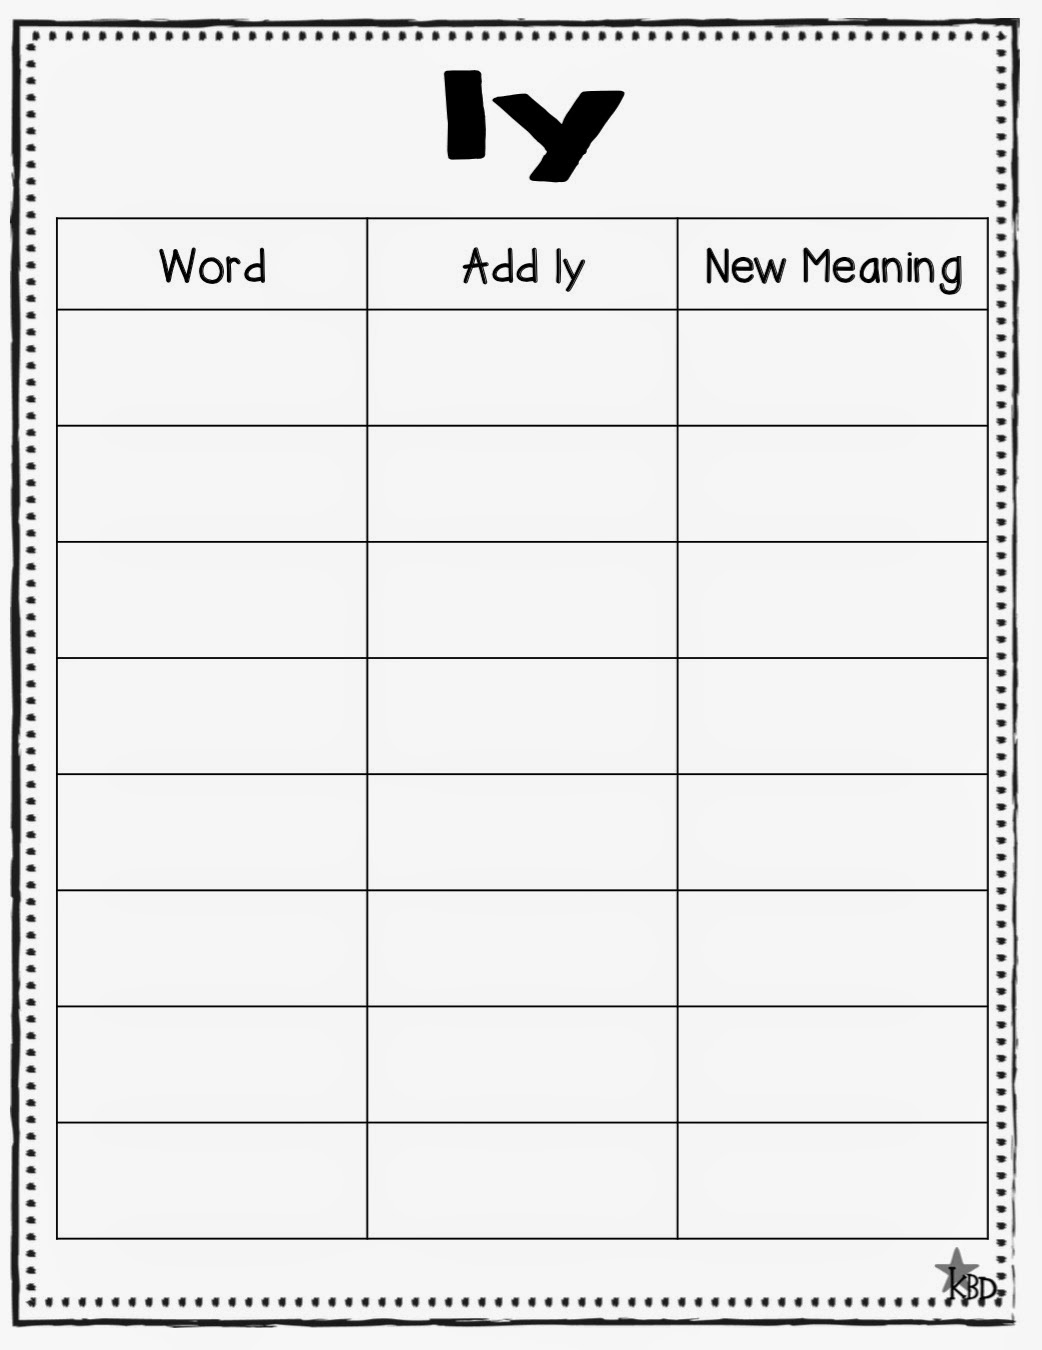 17 Best Images Of Words To Add Endings Worksheet